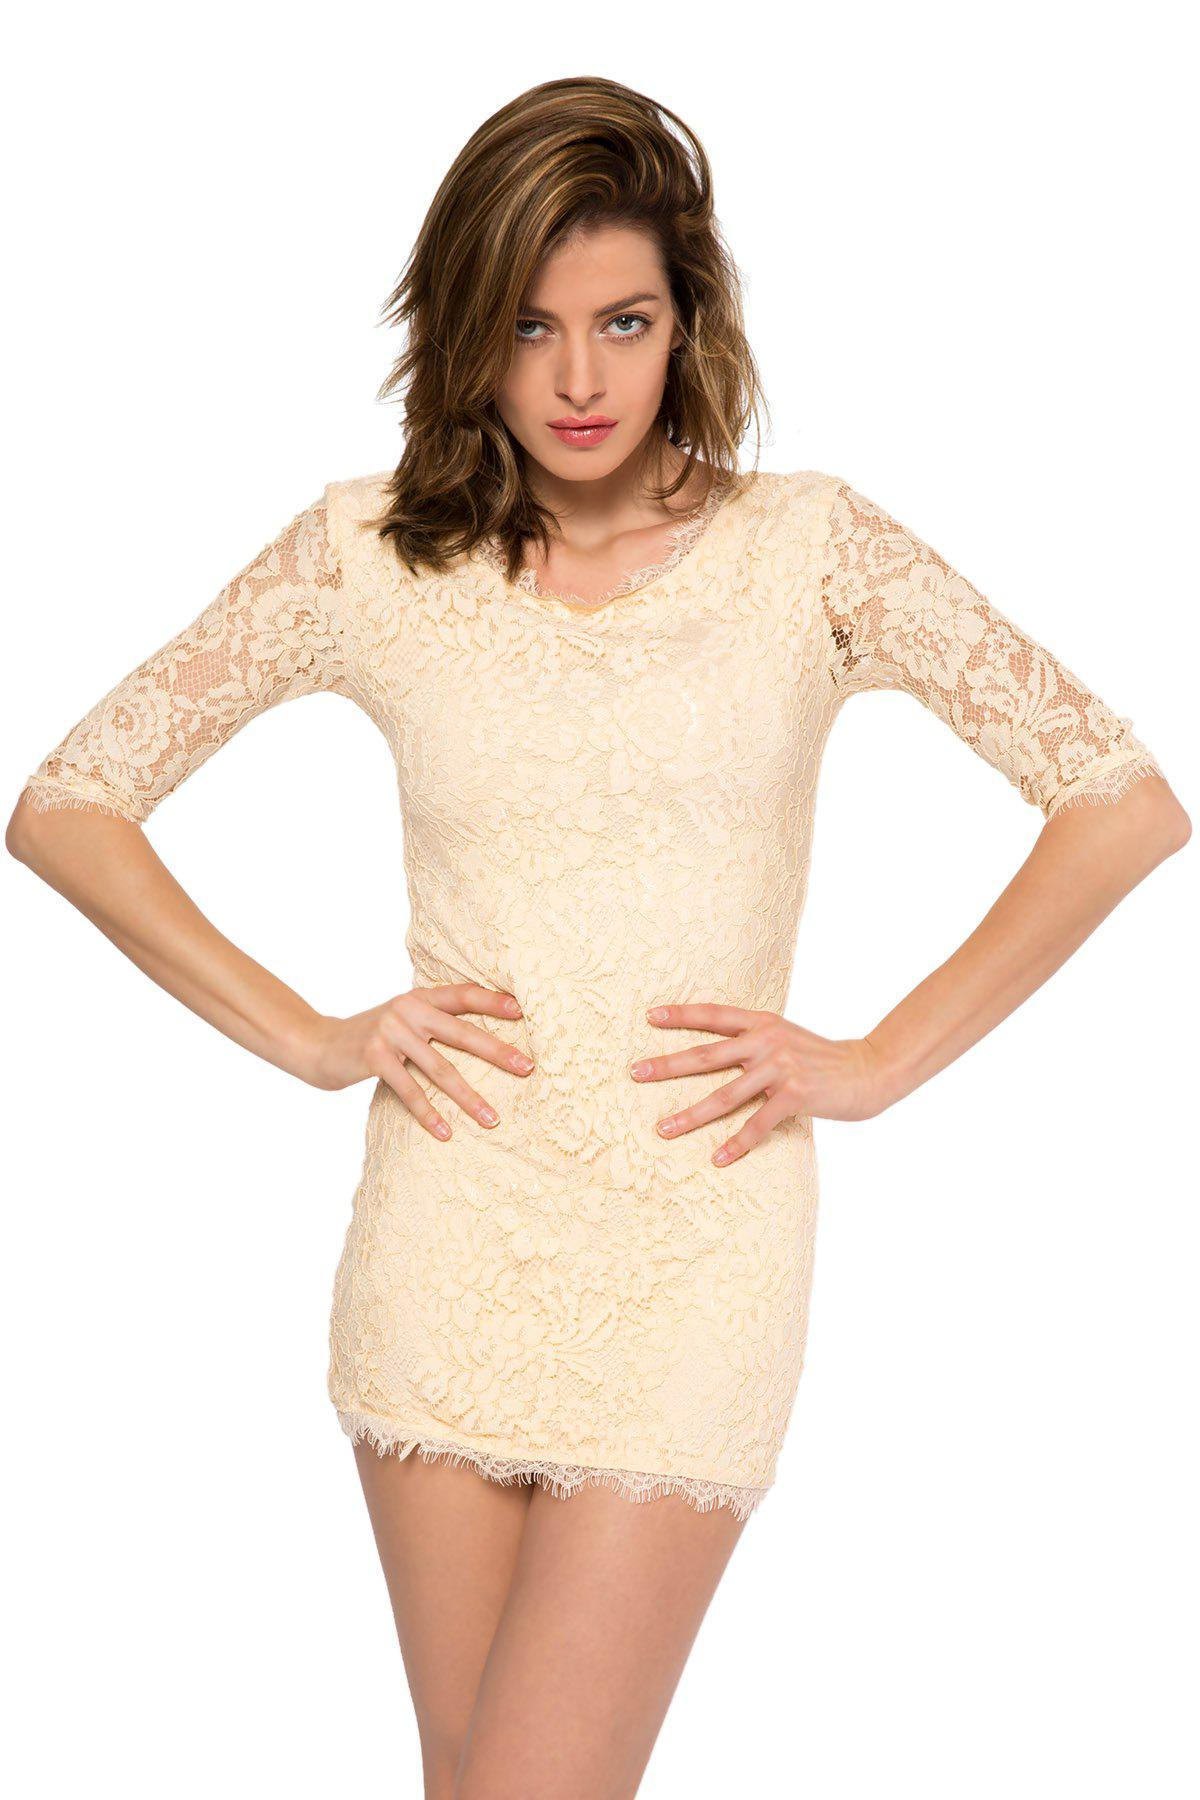 Trendy Style Scoop Collar 3/4 Sleeve Solid Color Slimming Women's Lace Dress - BEIGE M